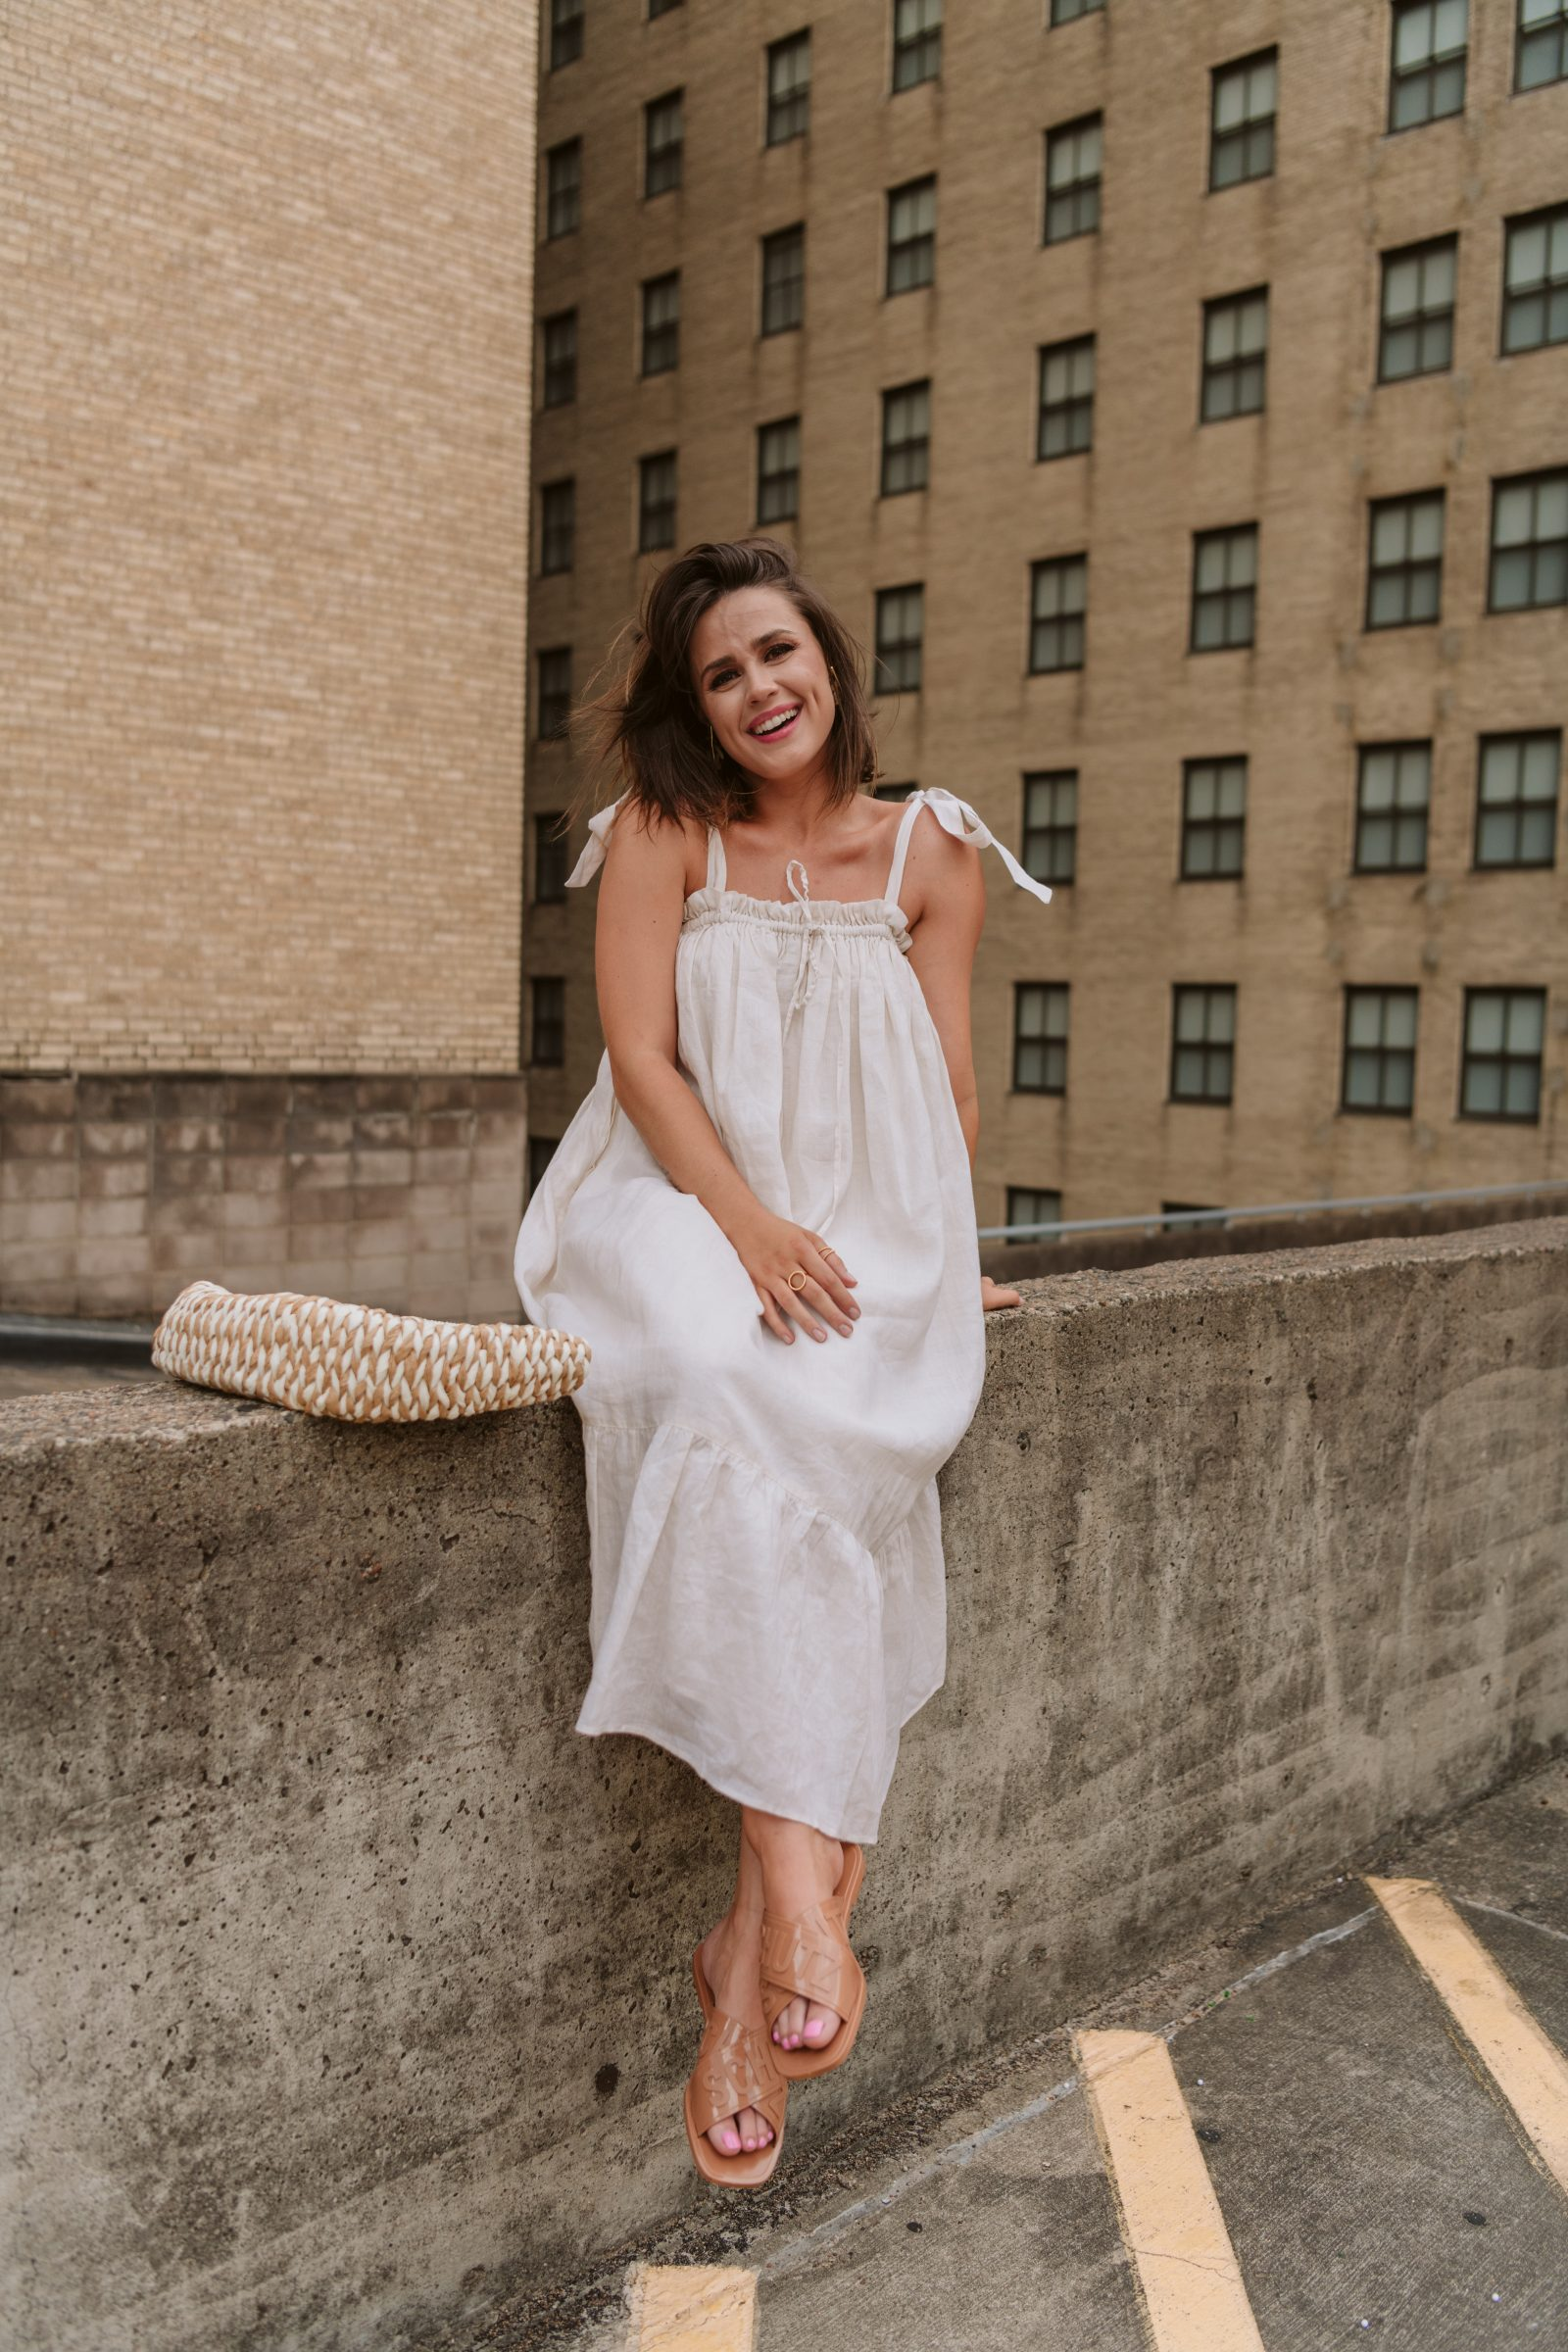 Houston Fashion Blogger Elly Brown wears a linen Summer dress from revolve and Schutz jelly slides